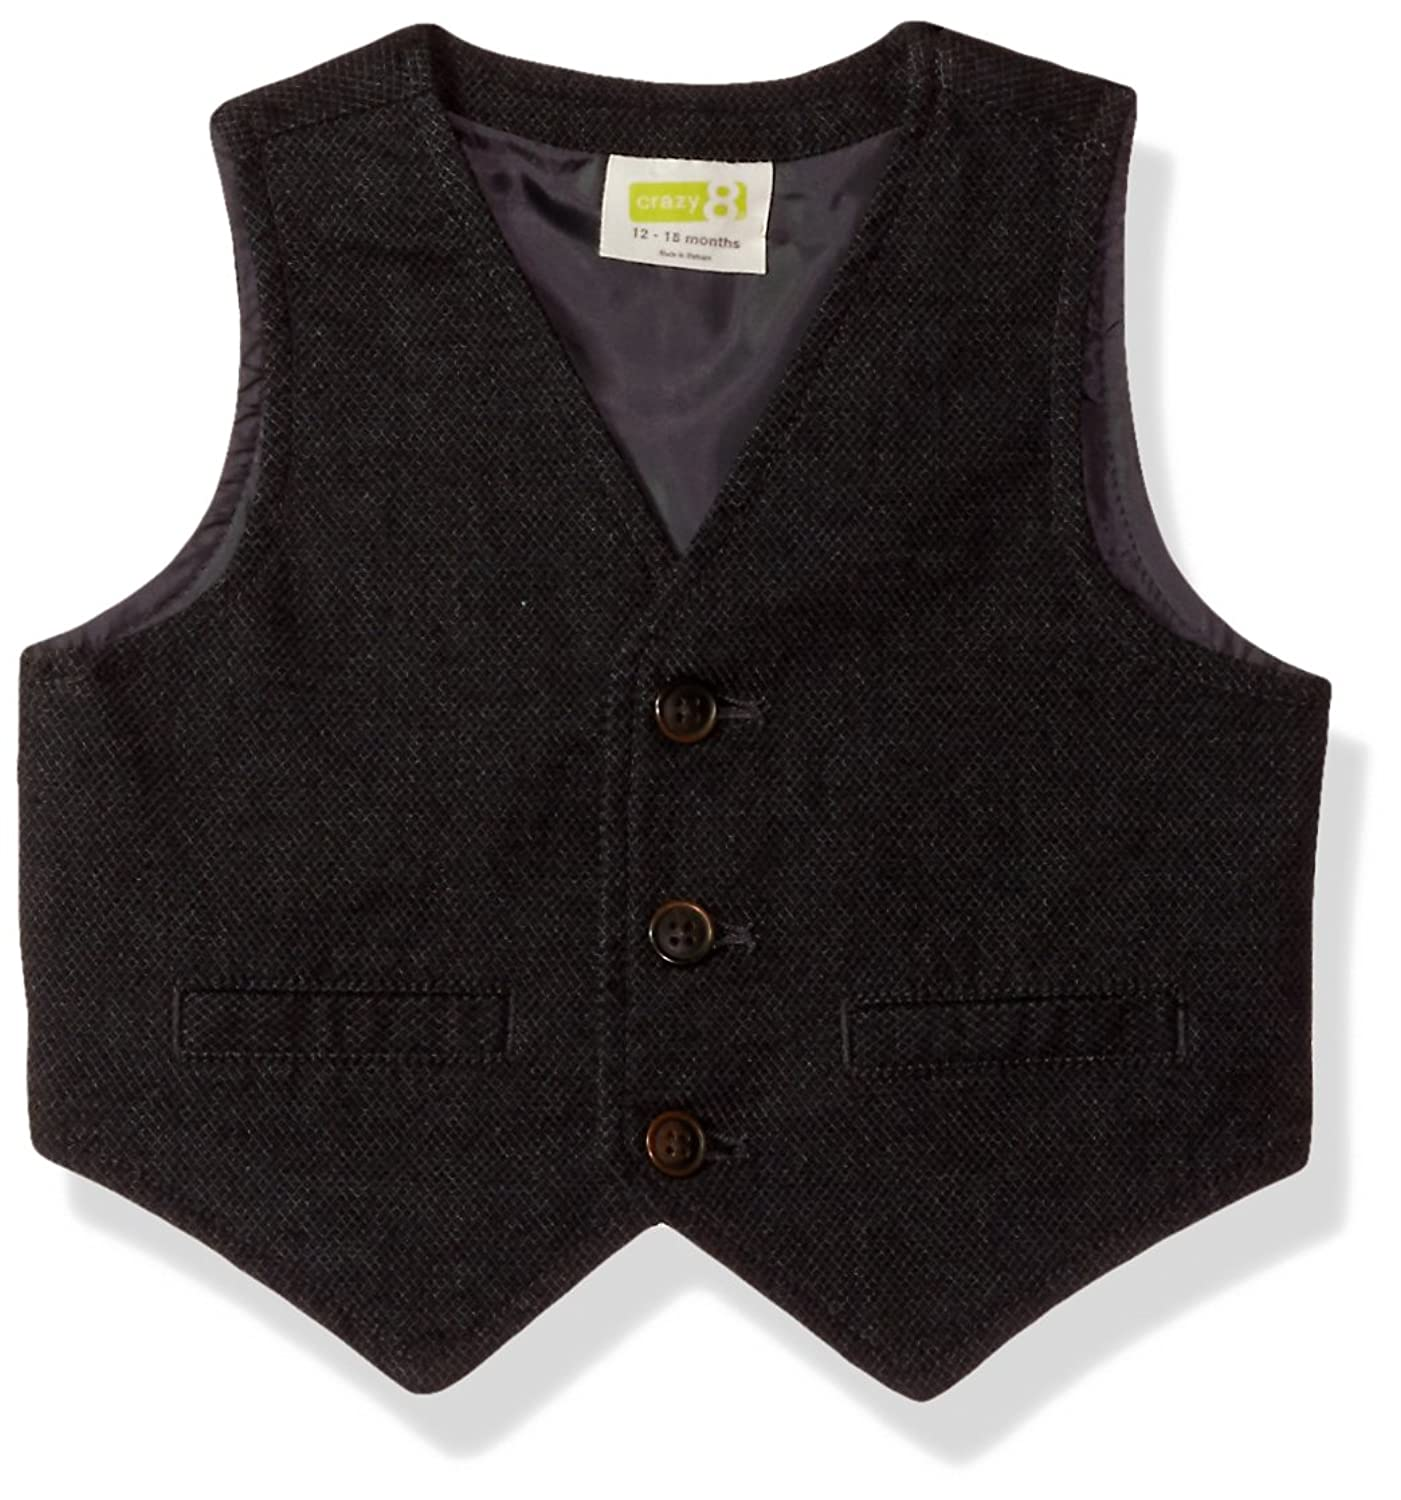 1920s Children Fashions: Girls, Boys, Baby Costumes Crazy 8 Toddler Boys Dressy Button Down Vest $24.88 AT vintagedancer.com